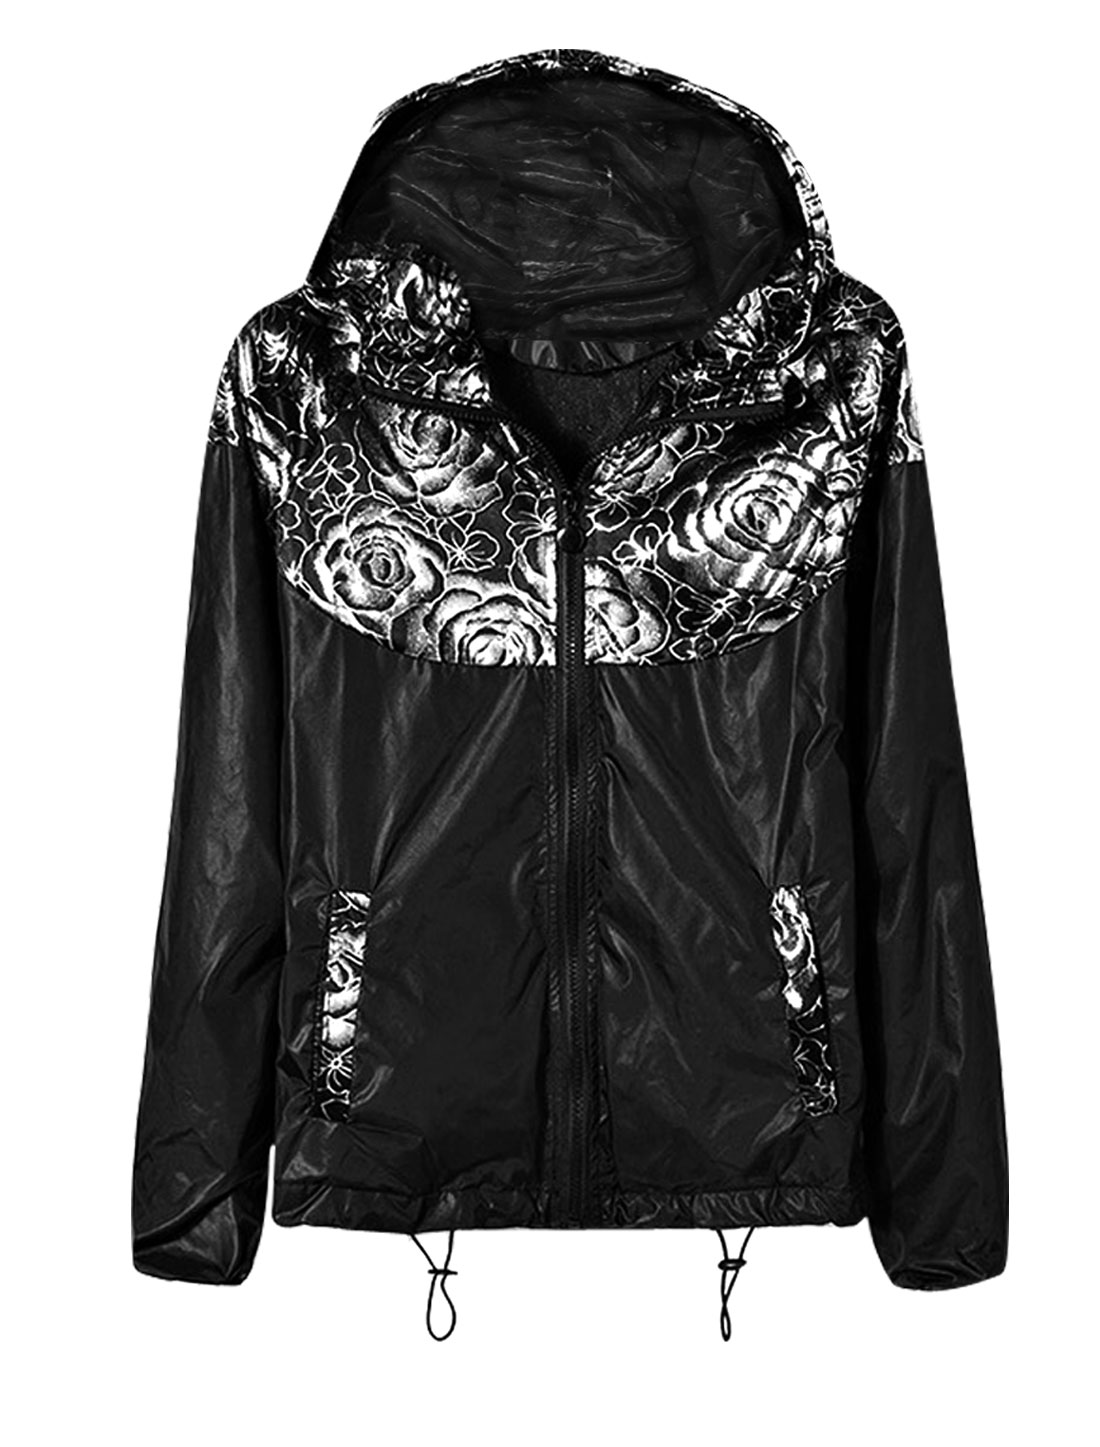 Men Flower Prints Zip Up Fully Lined Hooded Jacket Silver Tone Black S